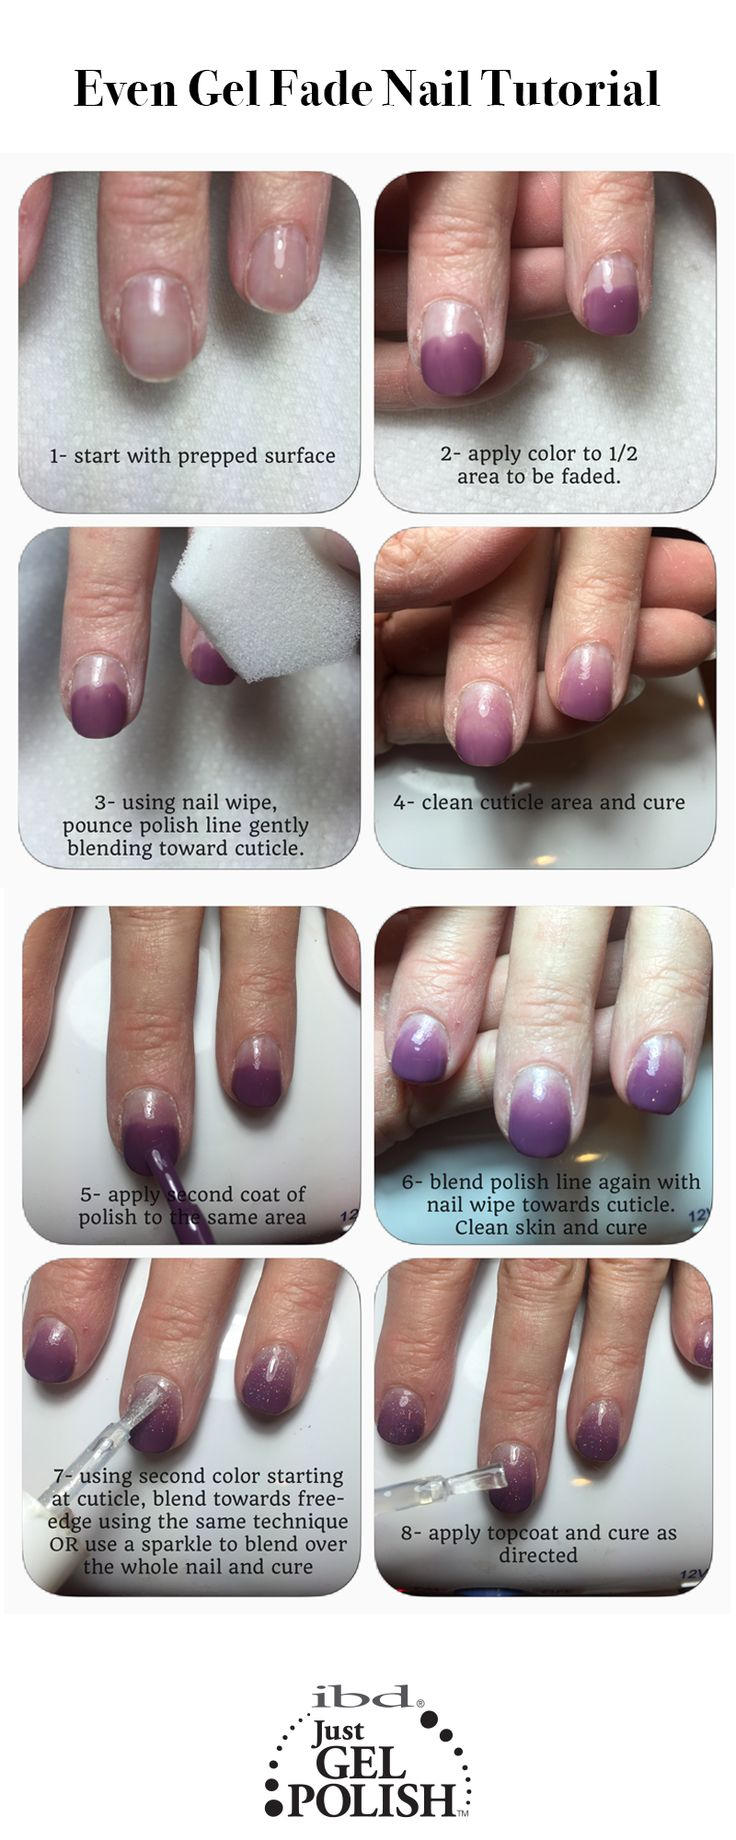 Even Gel Fade Ombre Nail Tutorial Using Sweet Sanctuary And Fireworks Justgel Polish Ibd